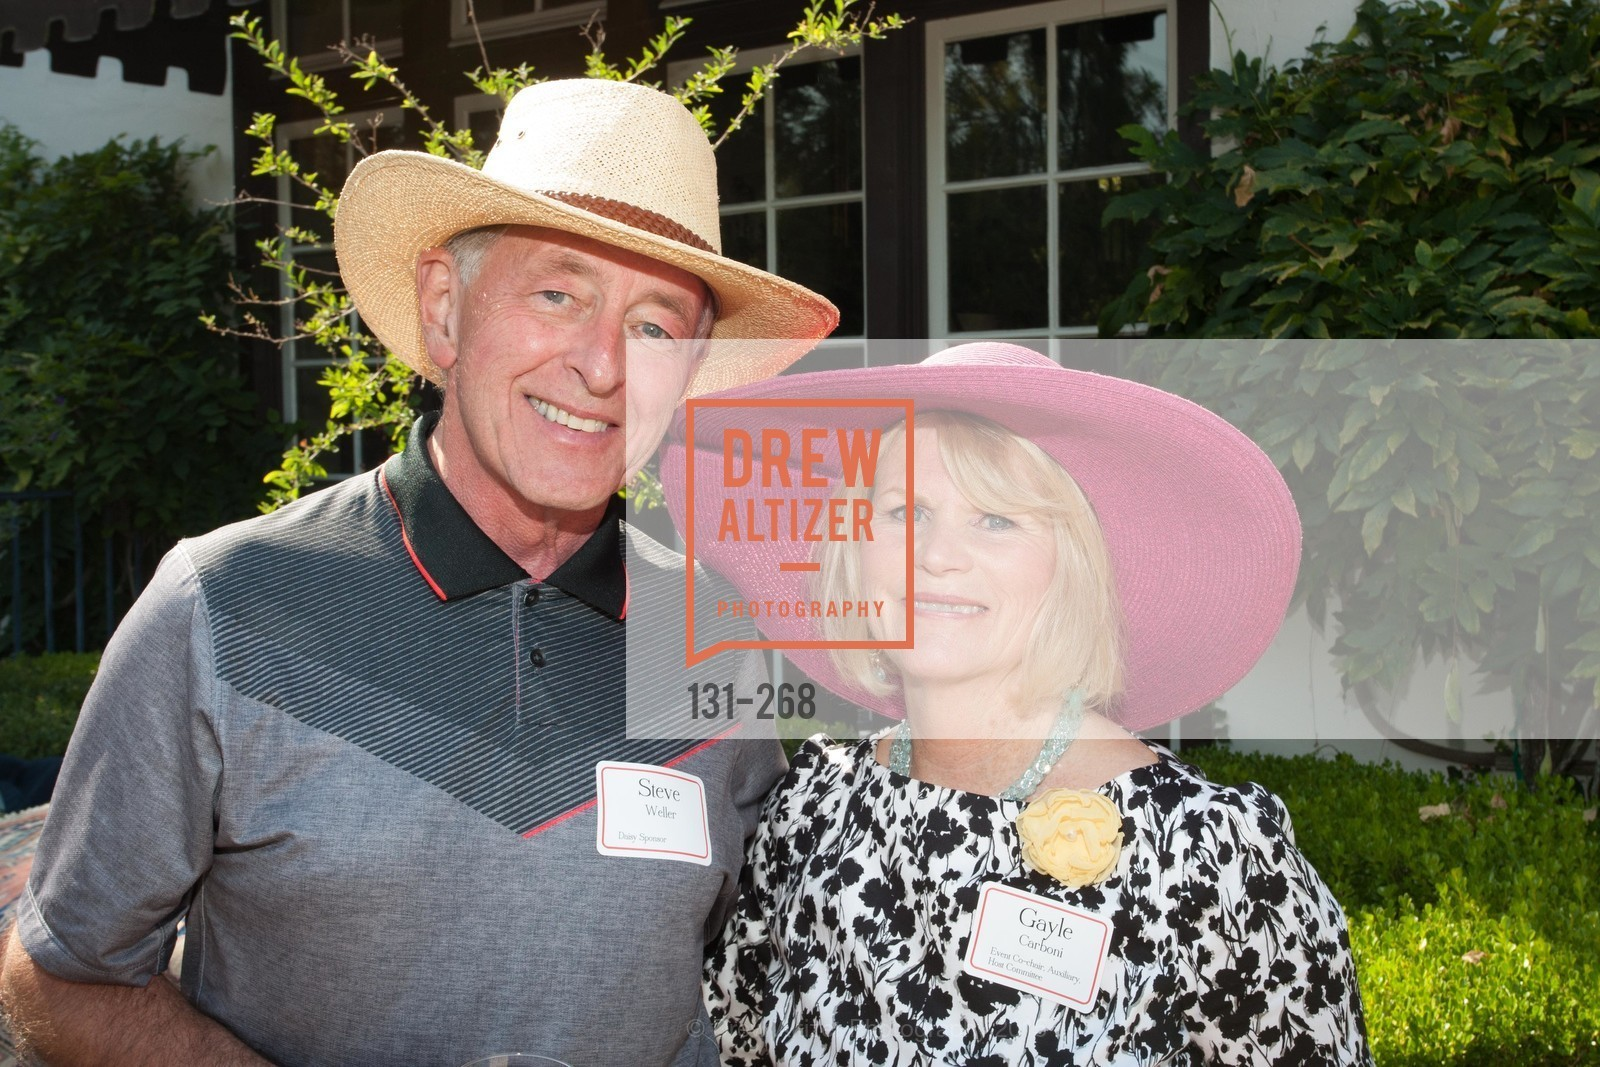 Steve Weller, Gayle Carboni, CASA of San Mateo County Auxiliary's Annual Garden Party, 2135 Ralston Avenue, August 30th, 2015,Drew Altizer, Drew Altizer Photography, full-service agency, private events, San Francisco photographer, photographer california